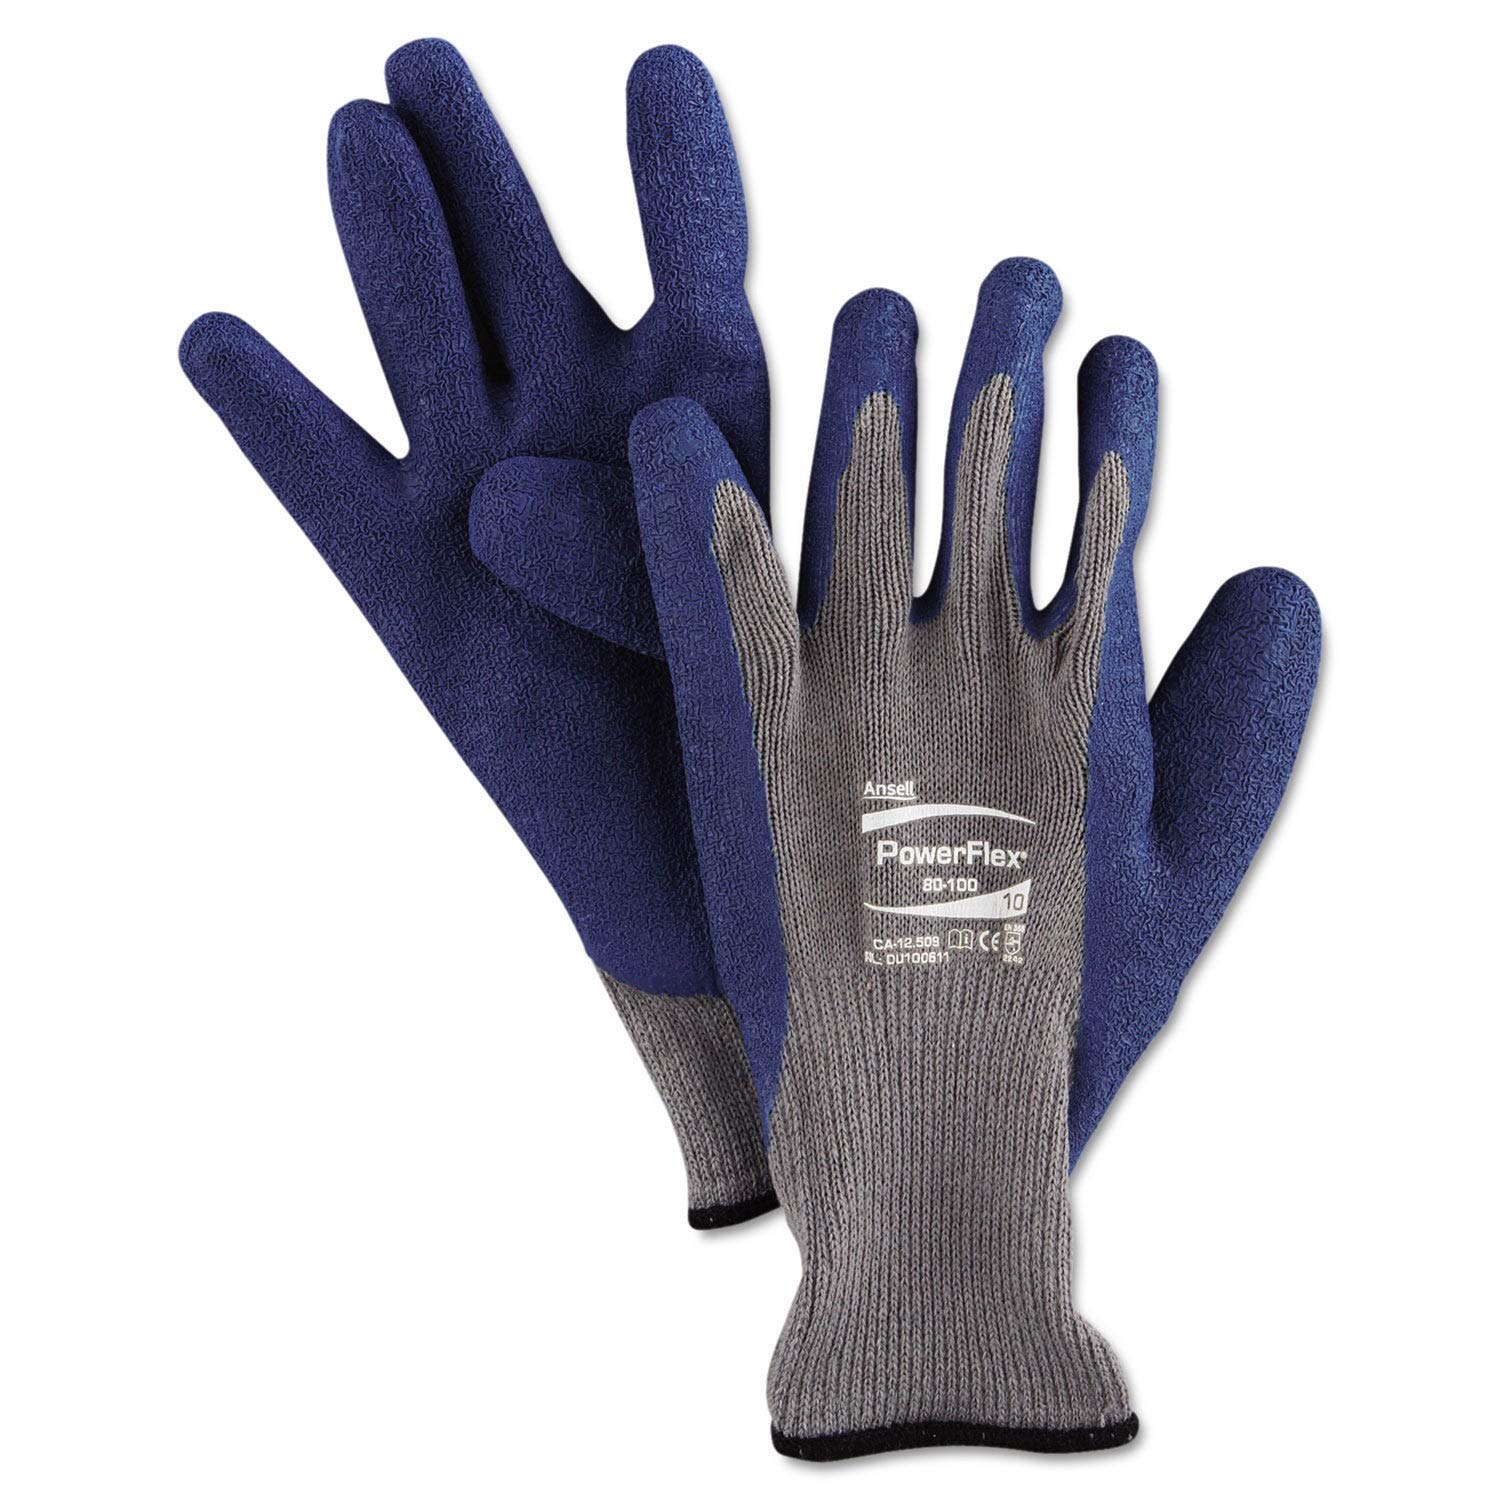 Ansell Dyneema Polyurethane-Coated Puncture Resistant Electricians Gloves Large